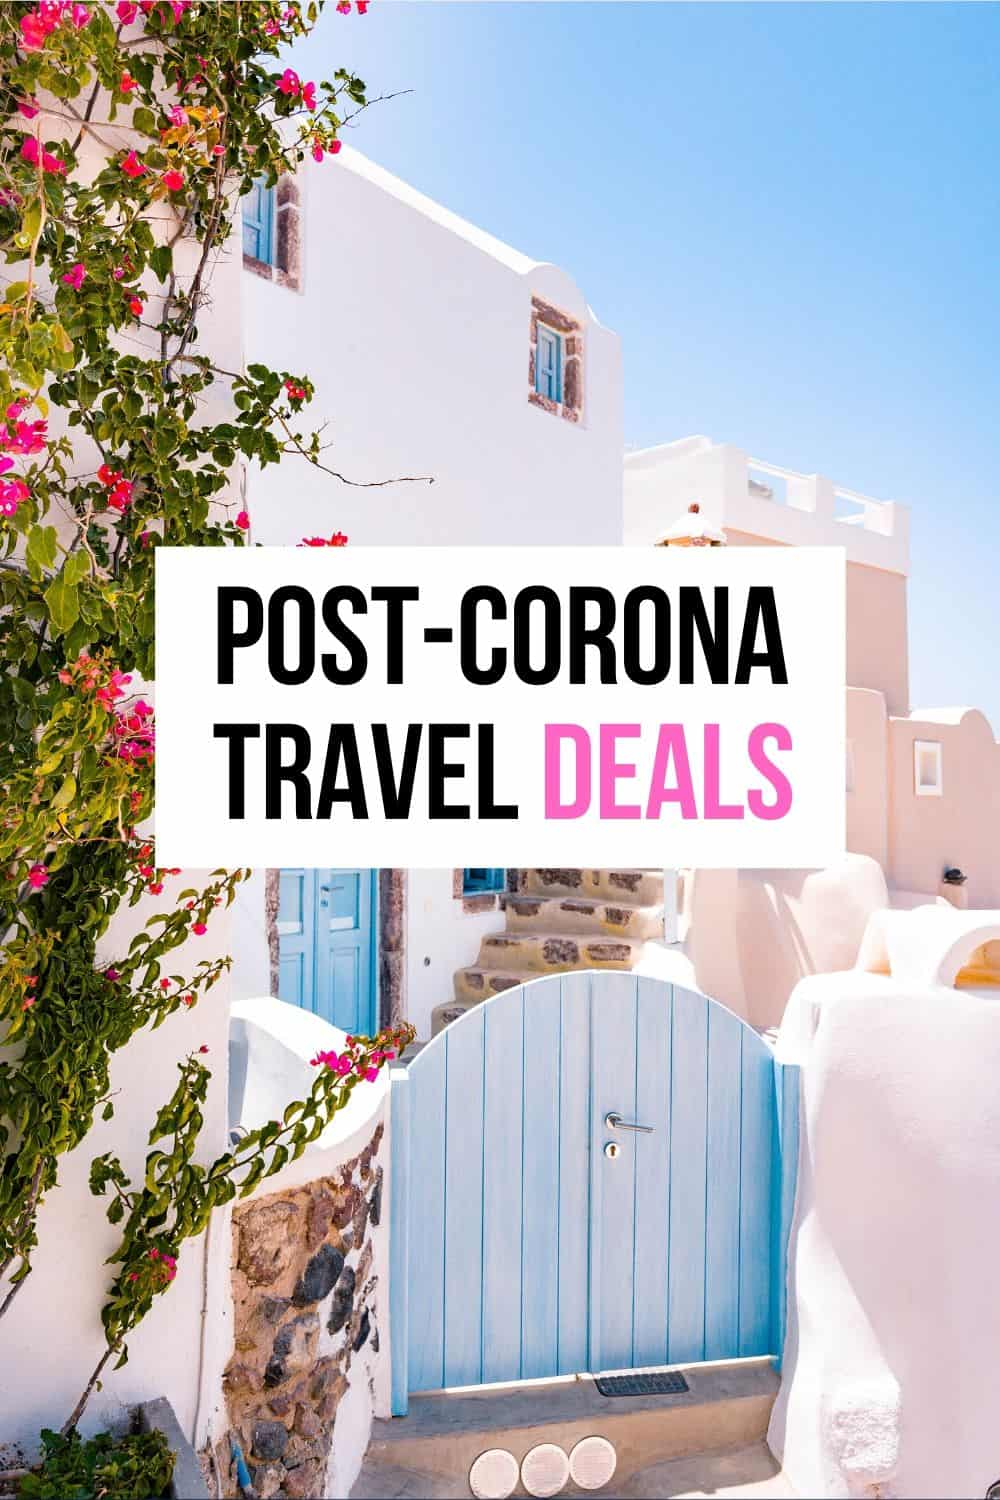 POST-CORONA TRAVEL DEALS and Discounts